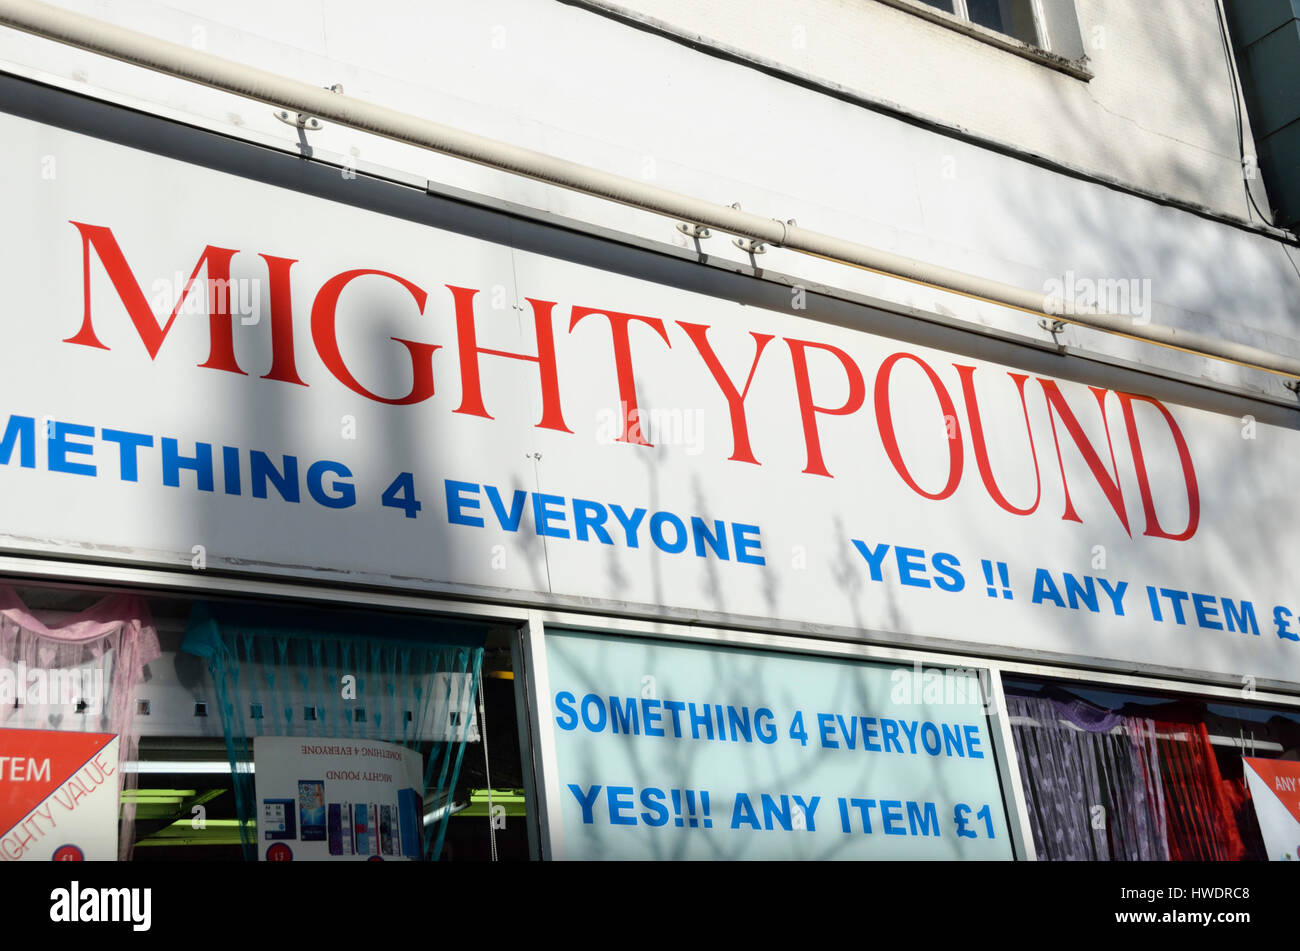 Mighty Pound sign on shop front. Stock Photo